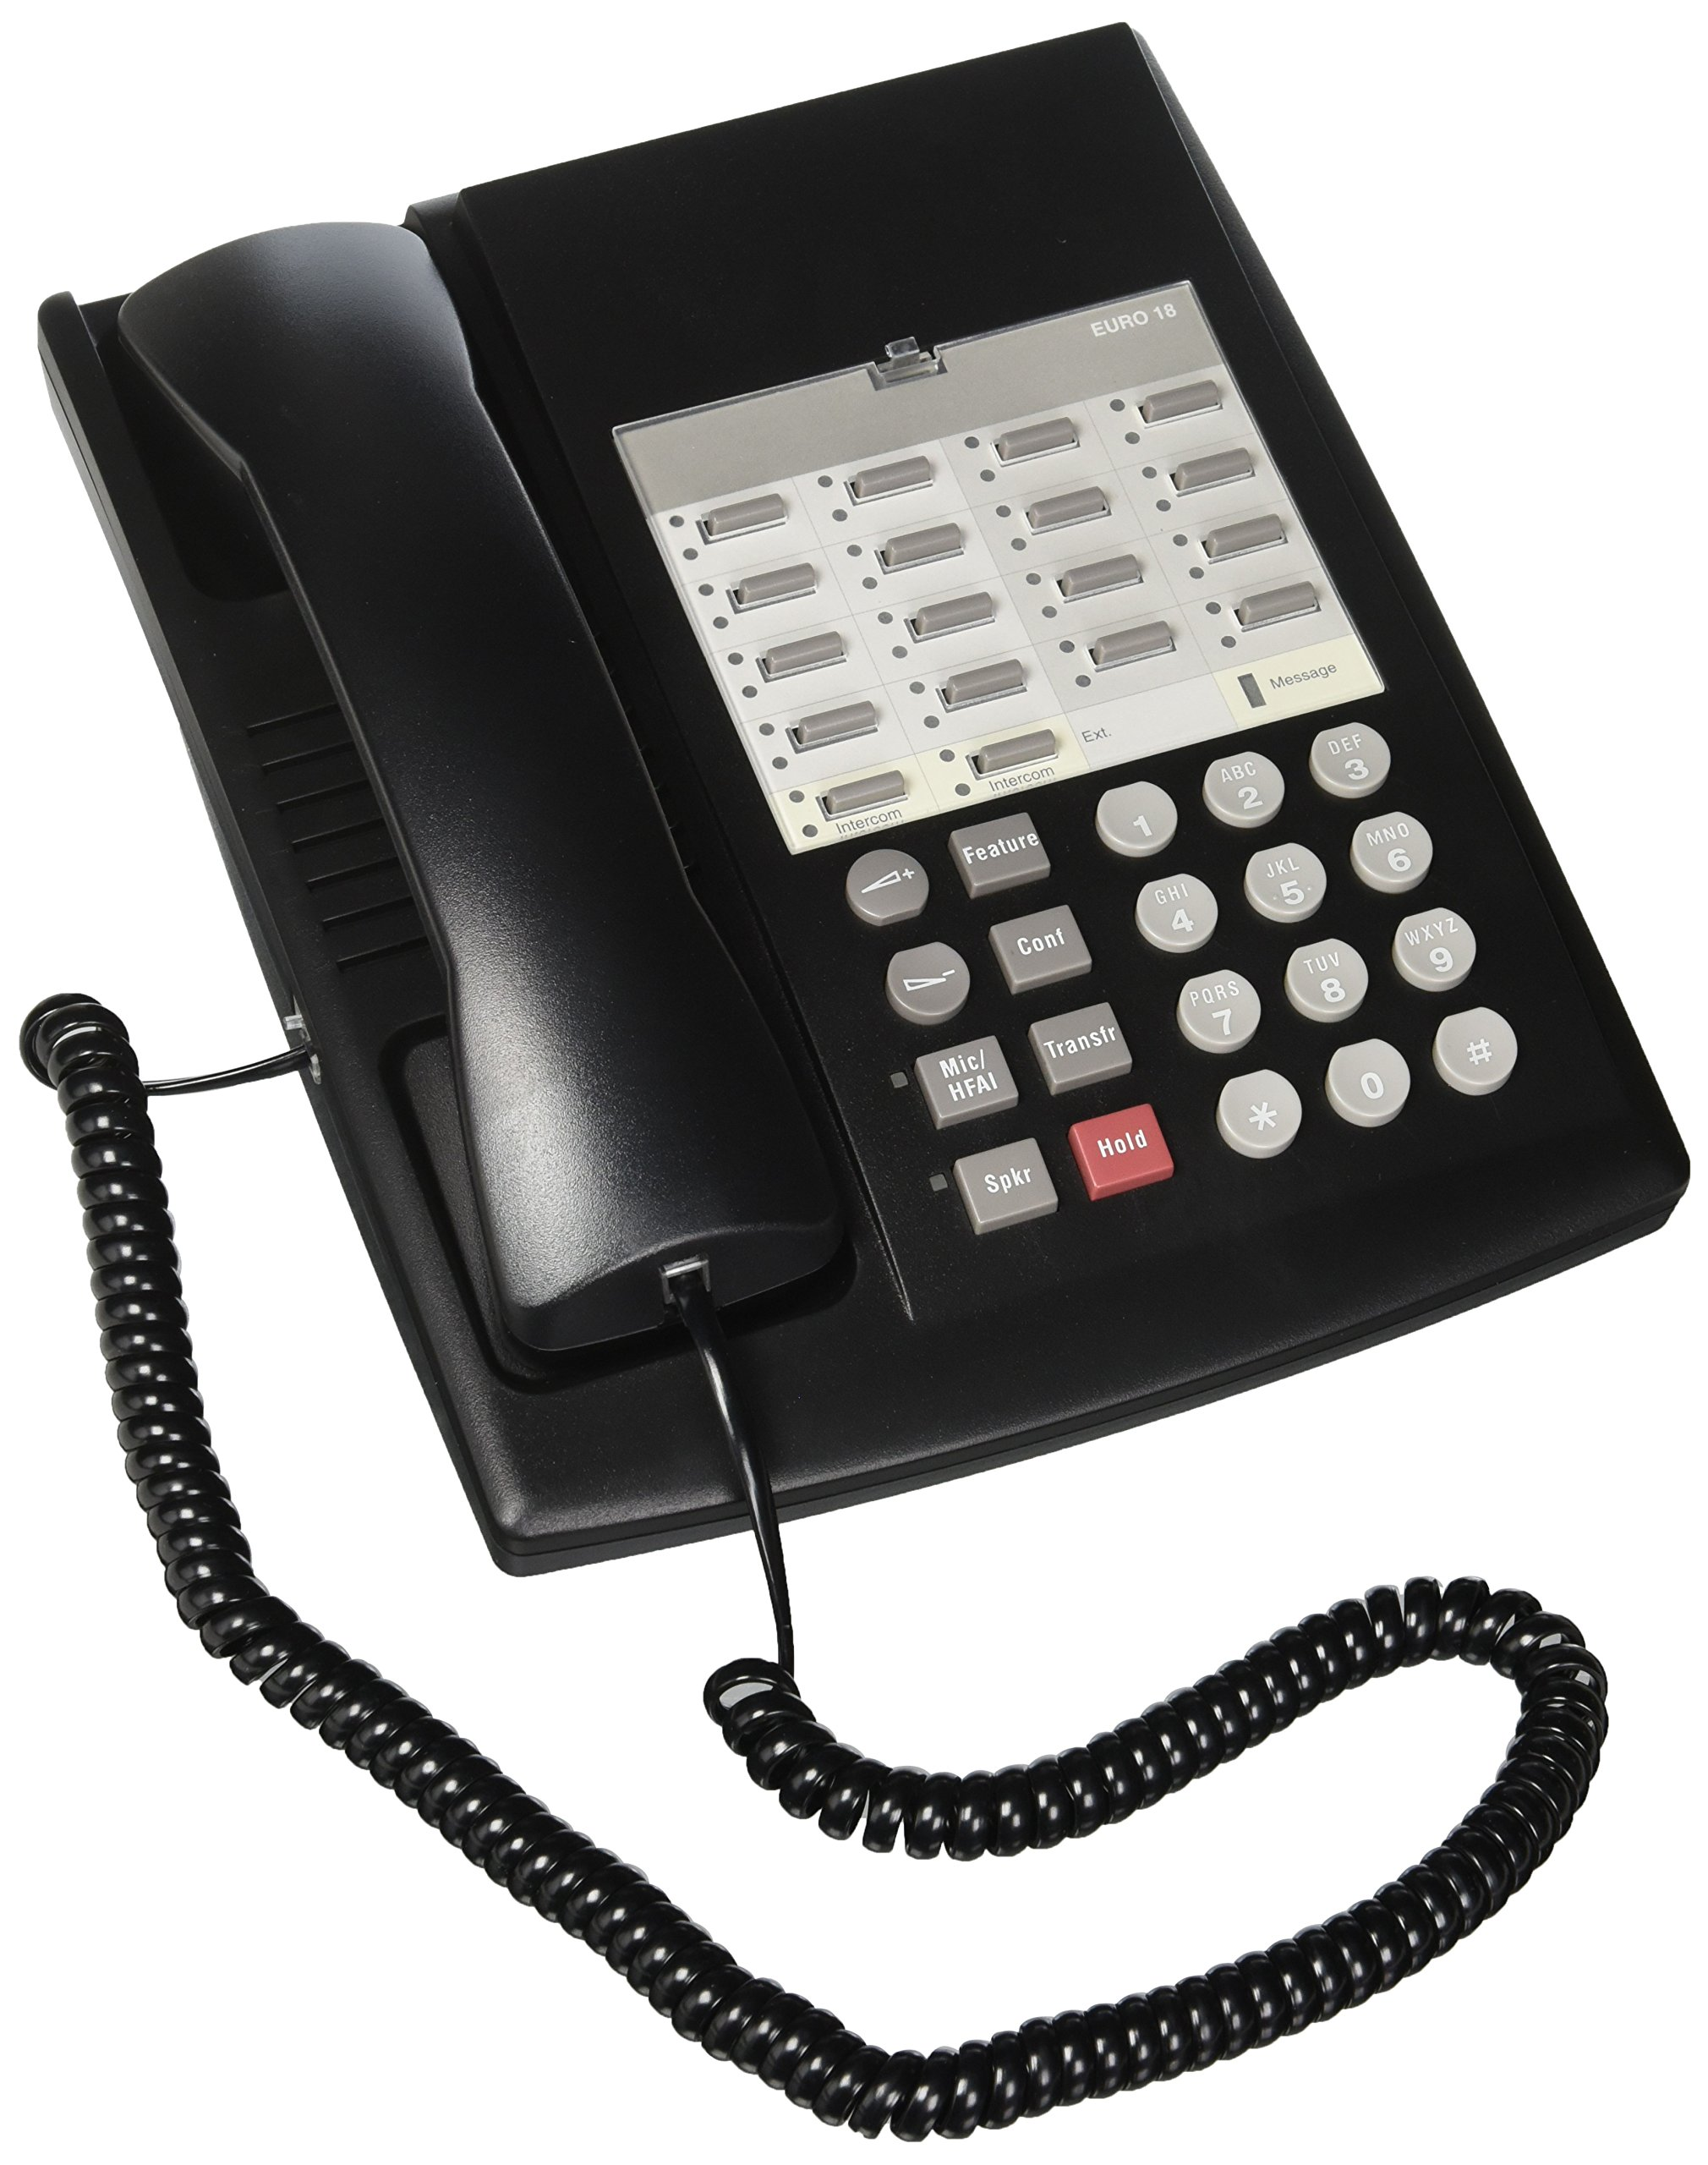 Replacement 18 Avaya Phone